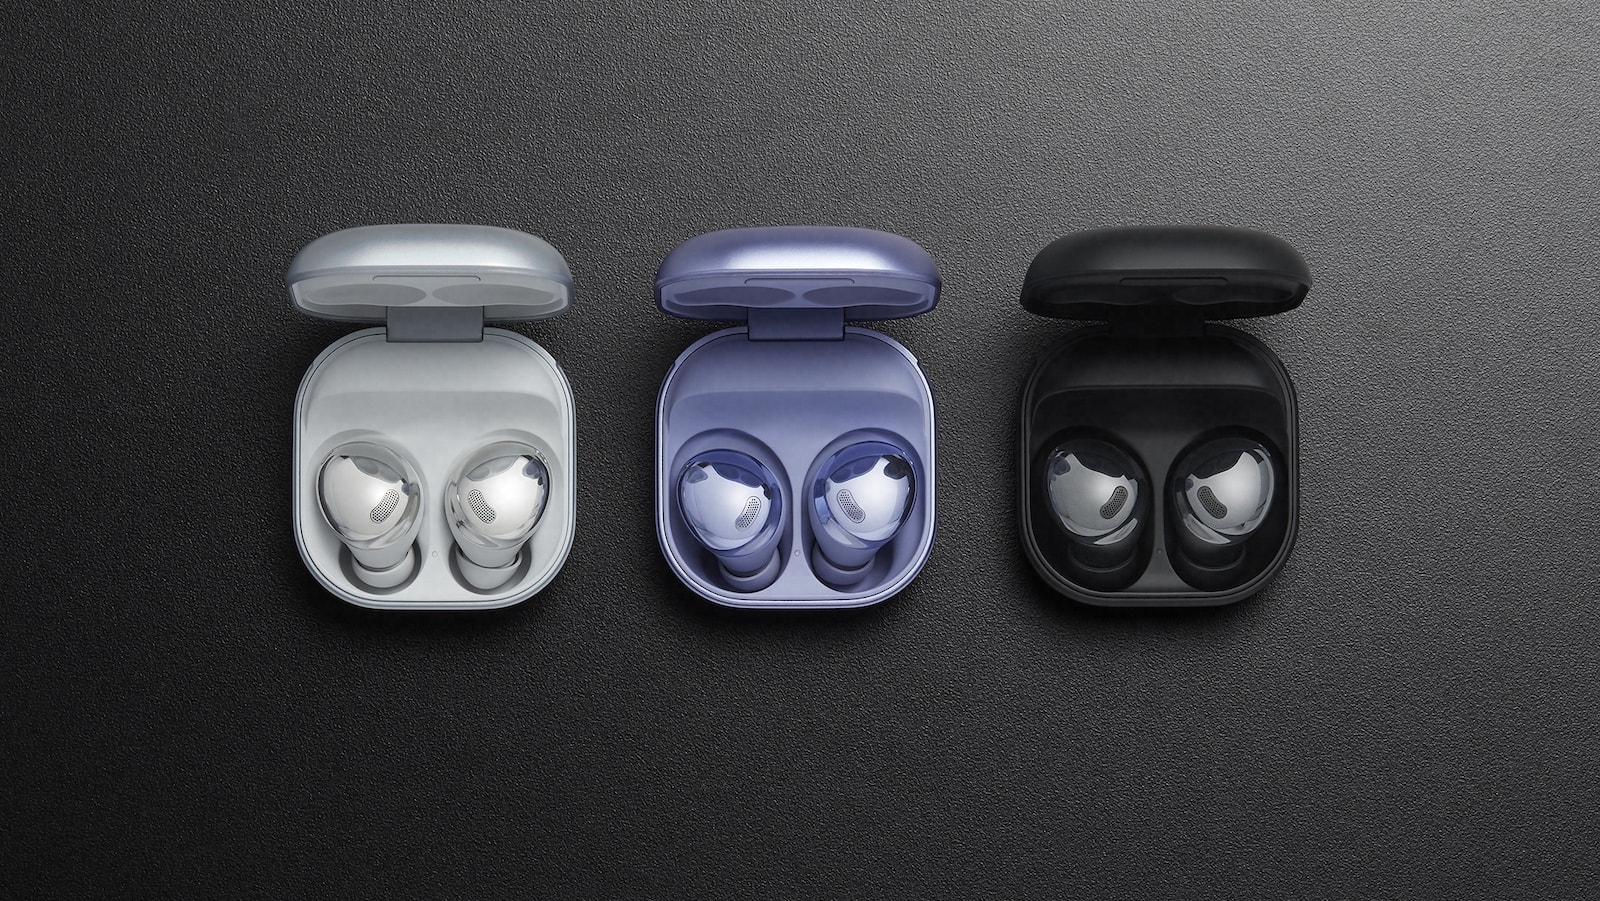 Samsung Galaxy Buds Pro earbuds easily switch audio to the device you're using